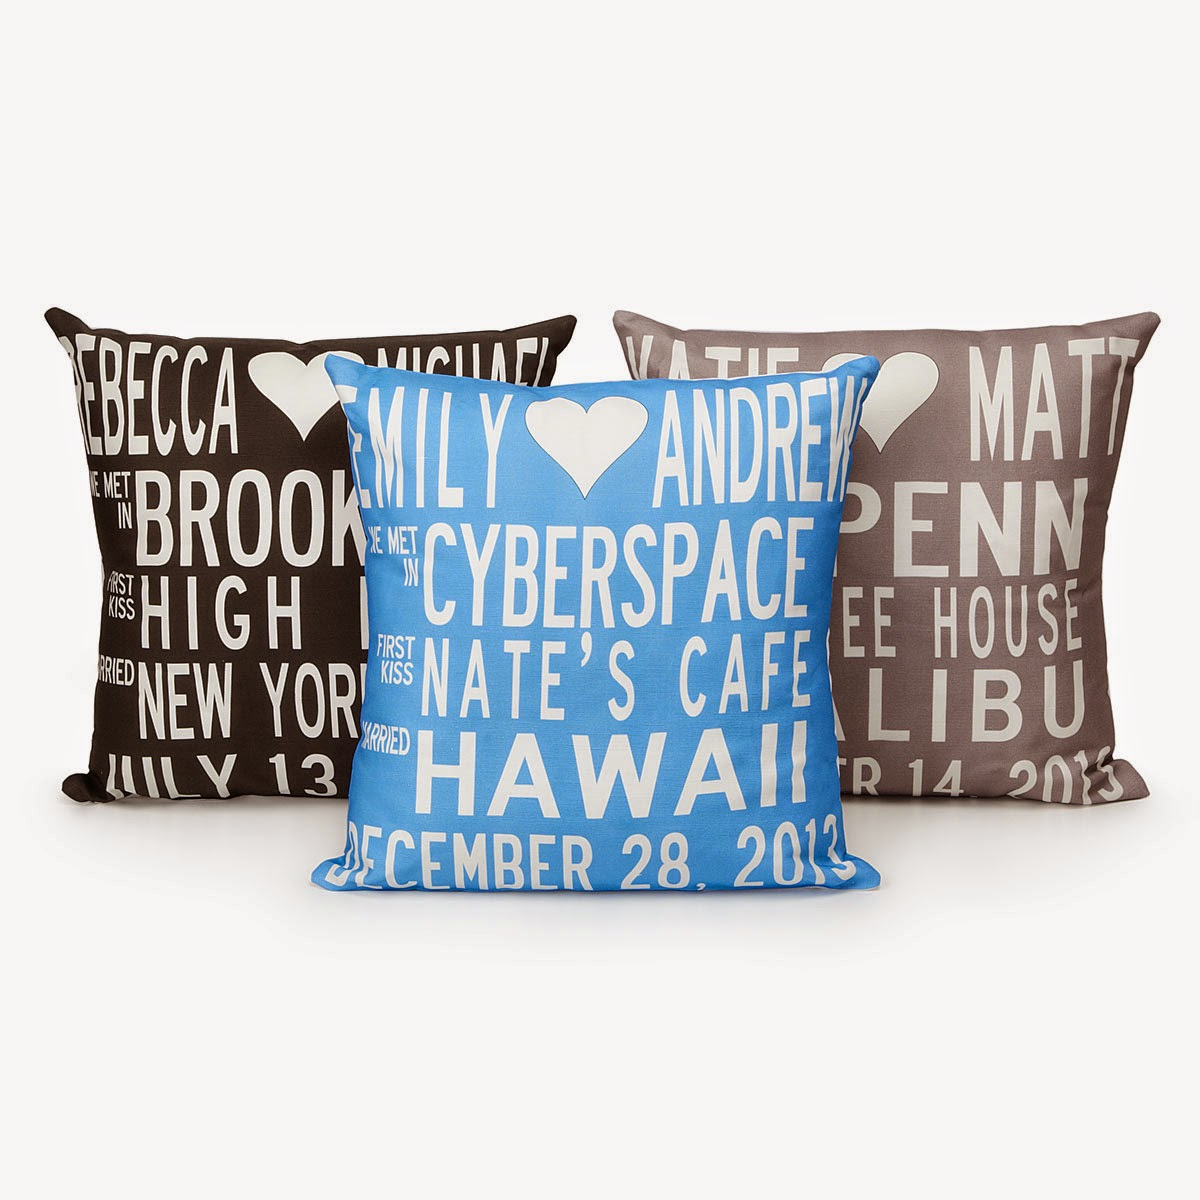 5th Wedding Anniversary Gift Ideas 52 Awesome They also feature a